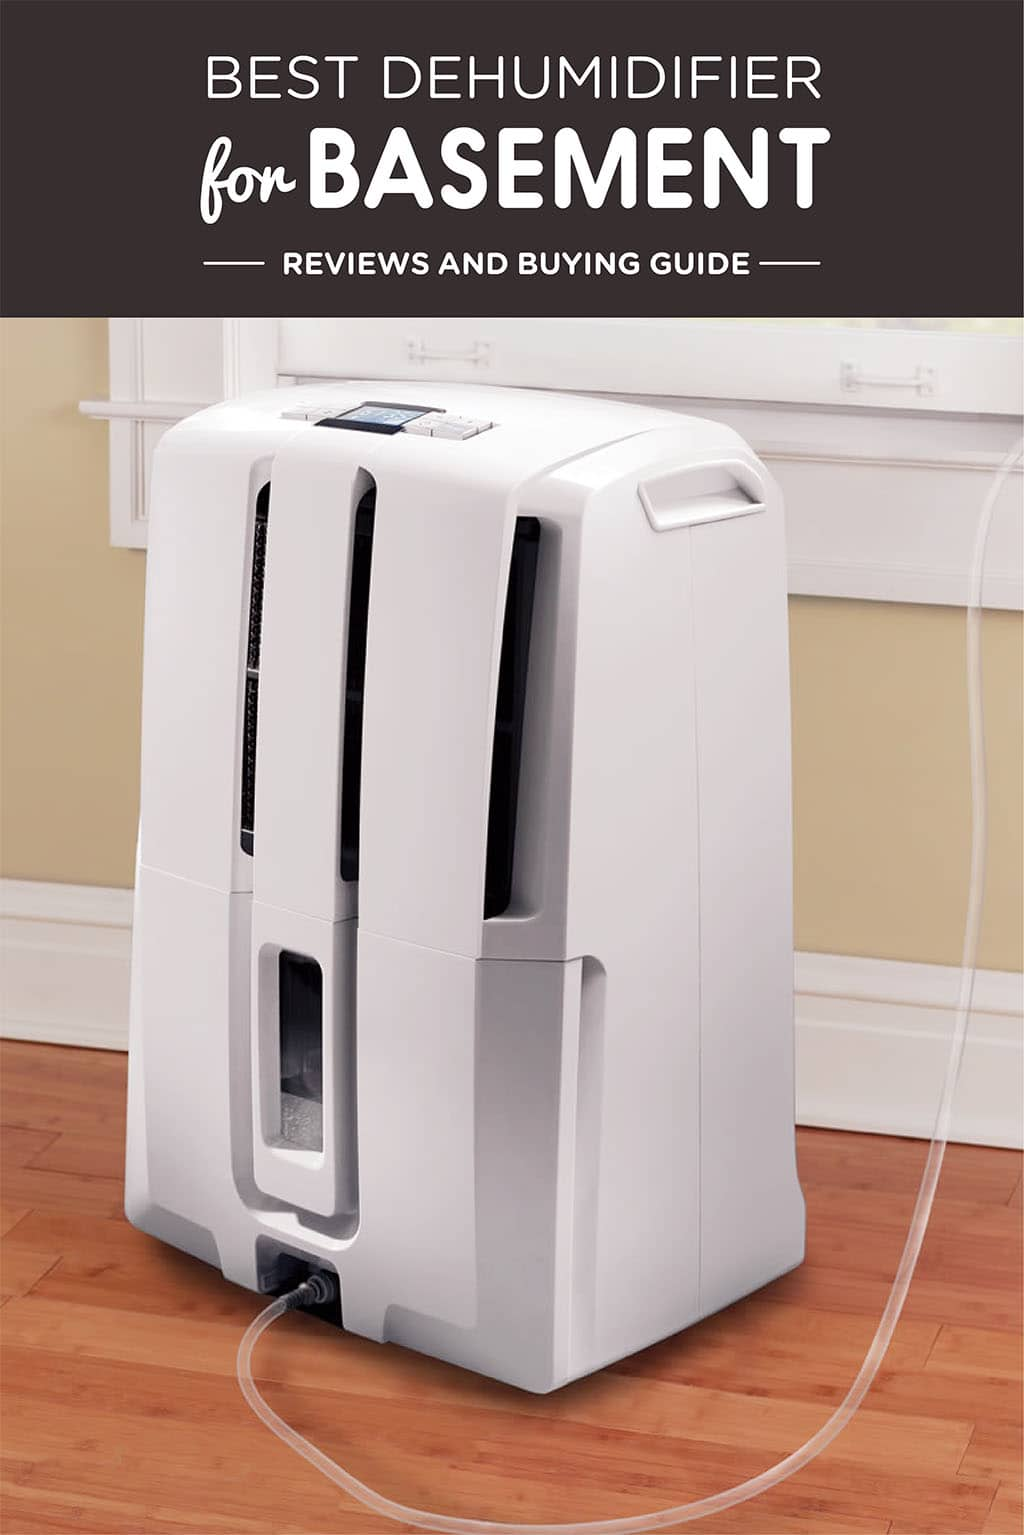 Best Dehumidifier for Basement  Reviews and Guide 2019